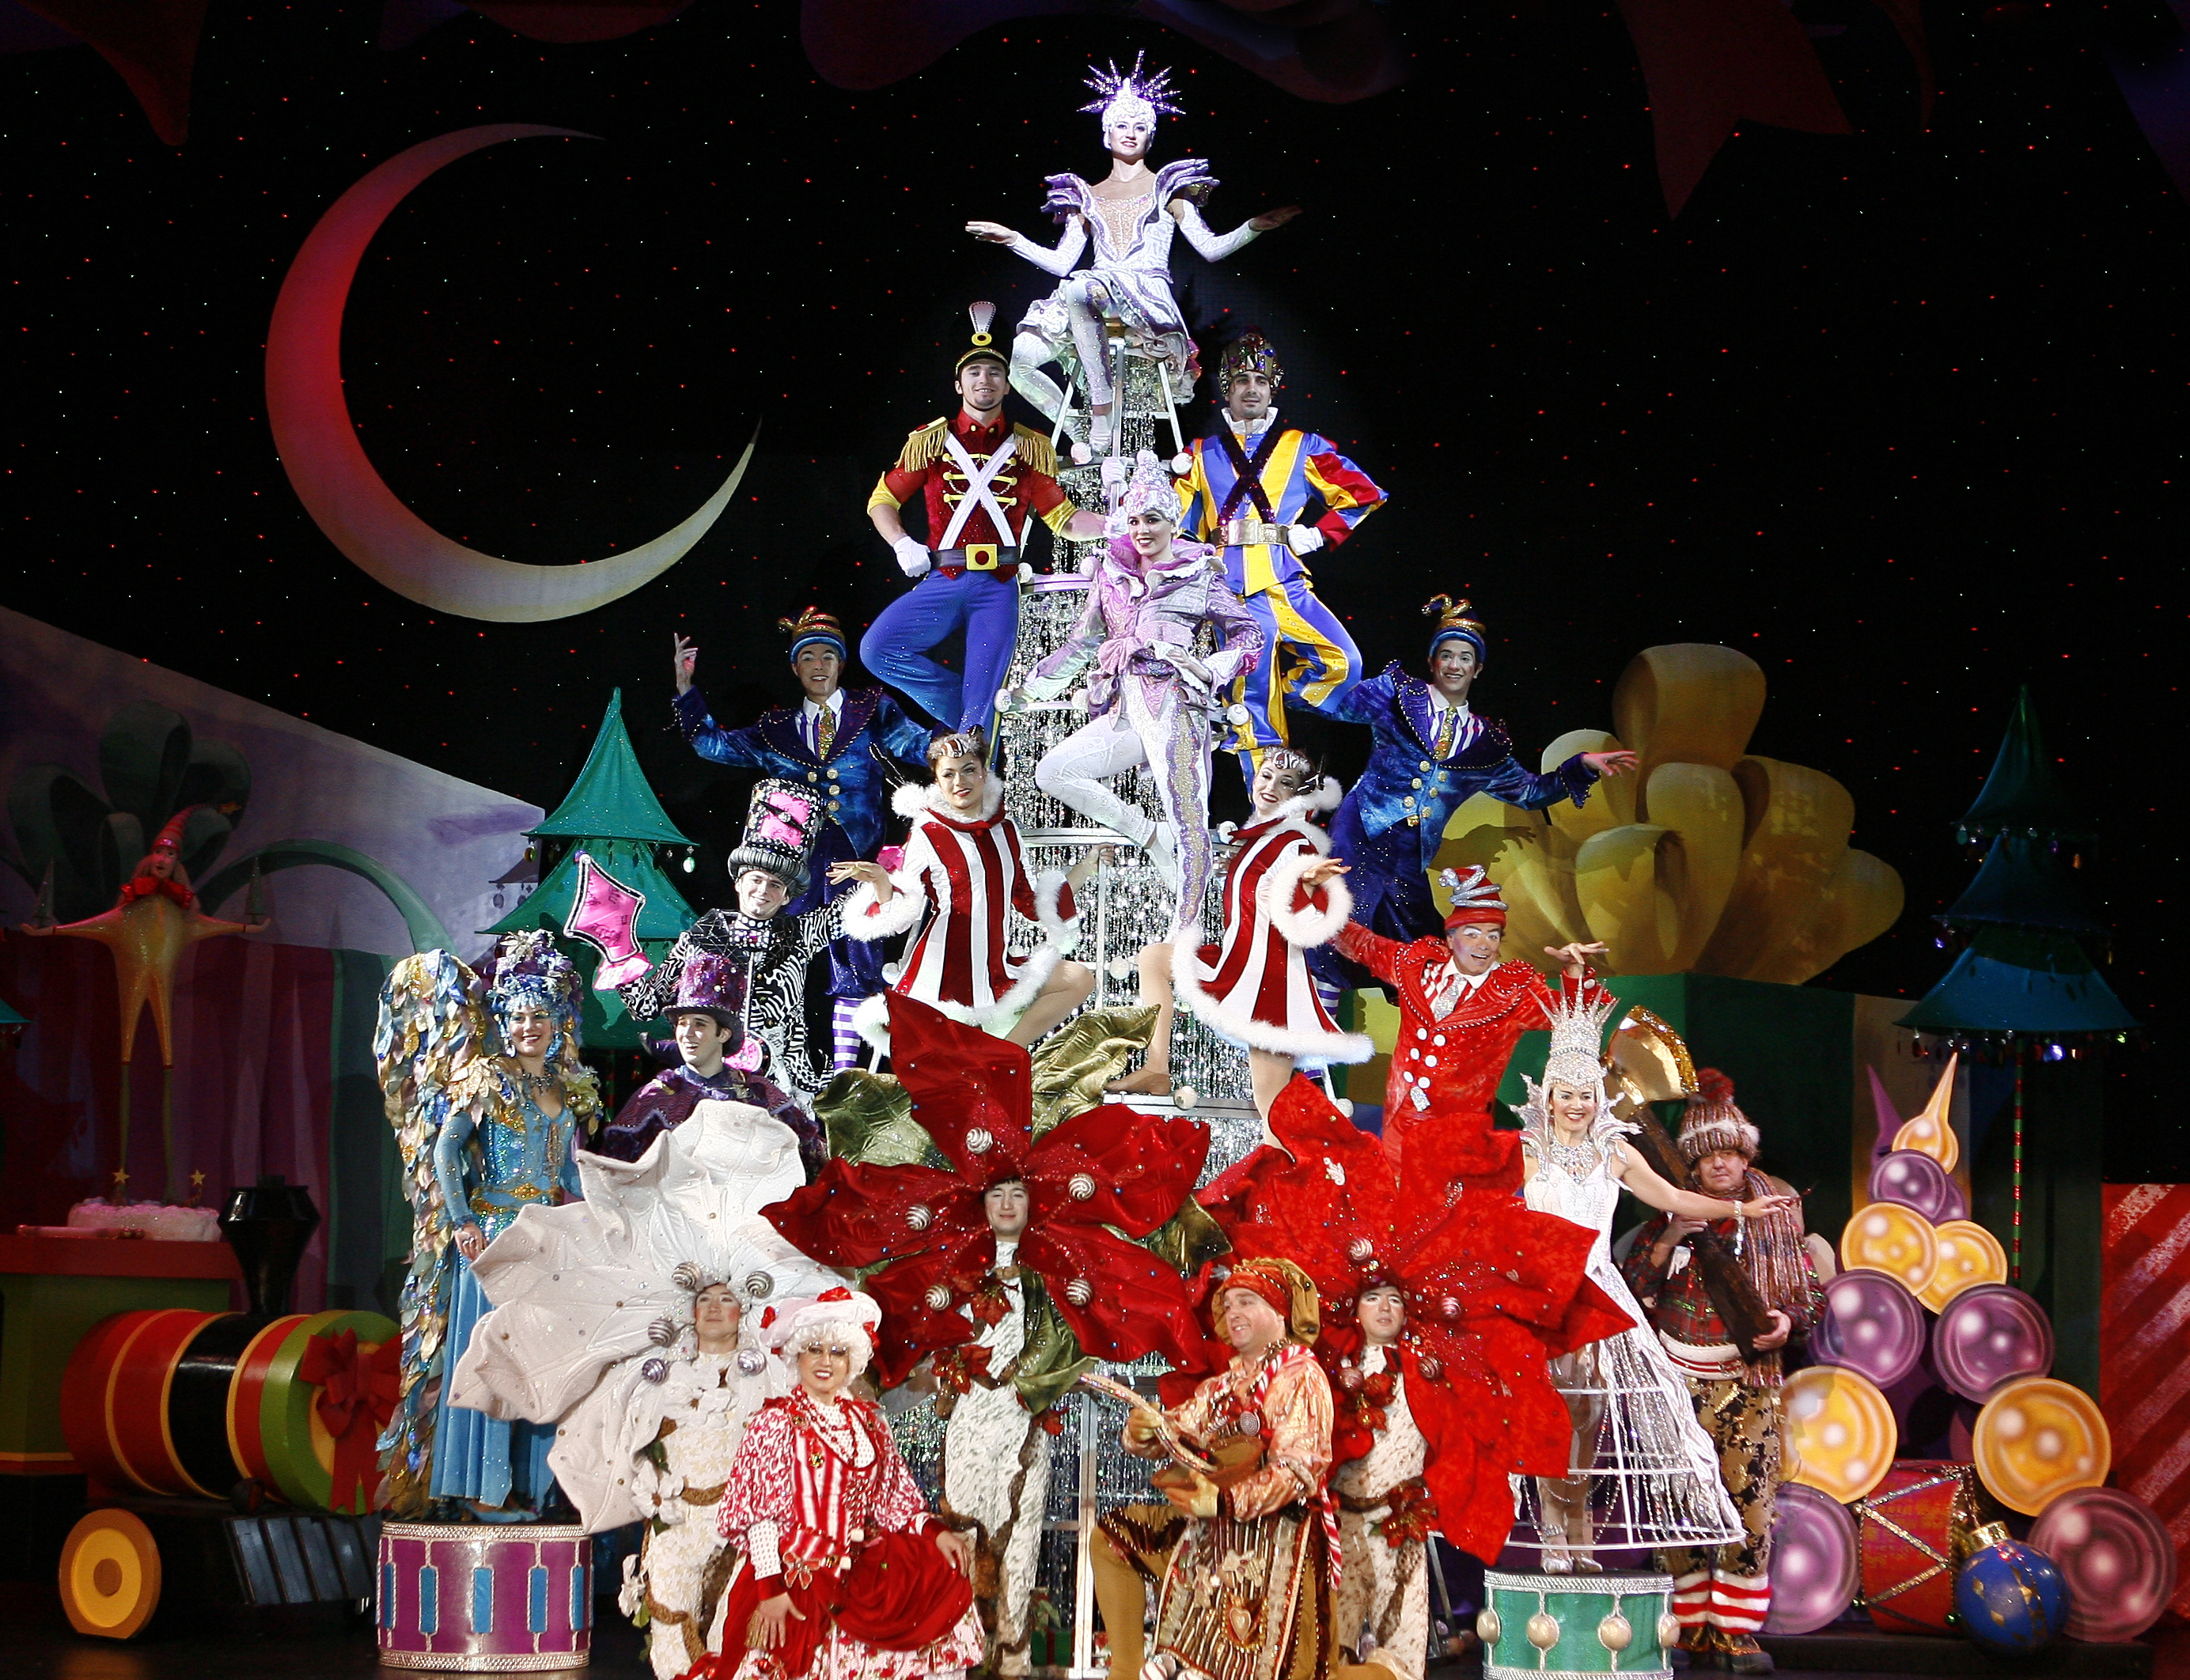 CIRQUE DREAMS HOLIDAZE -AN	ICONIC FAMILY HOLIDAY SPECTACULAR – COMES TO FOUR WINDS NEW BUFFALO'S SILVER CREEK EVENT CENTER ON DECEMBER 14 AND 15